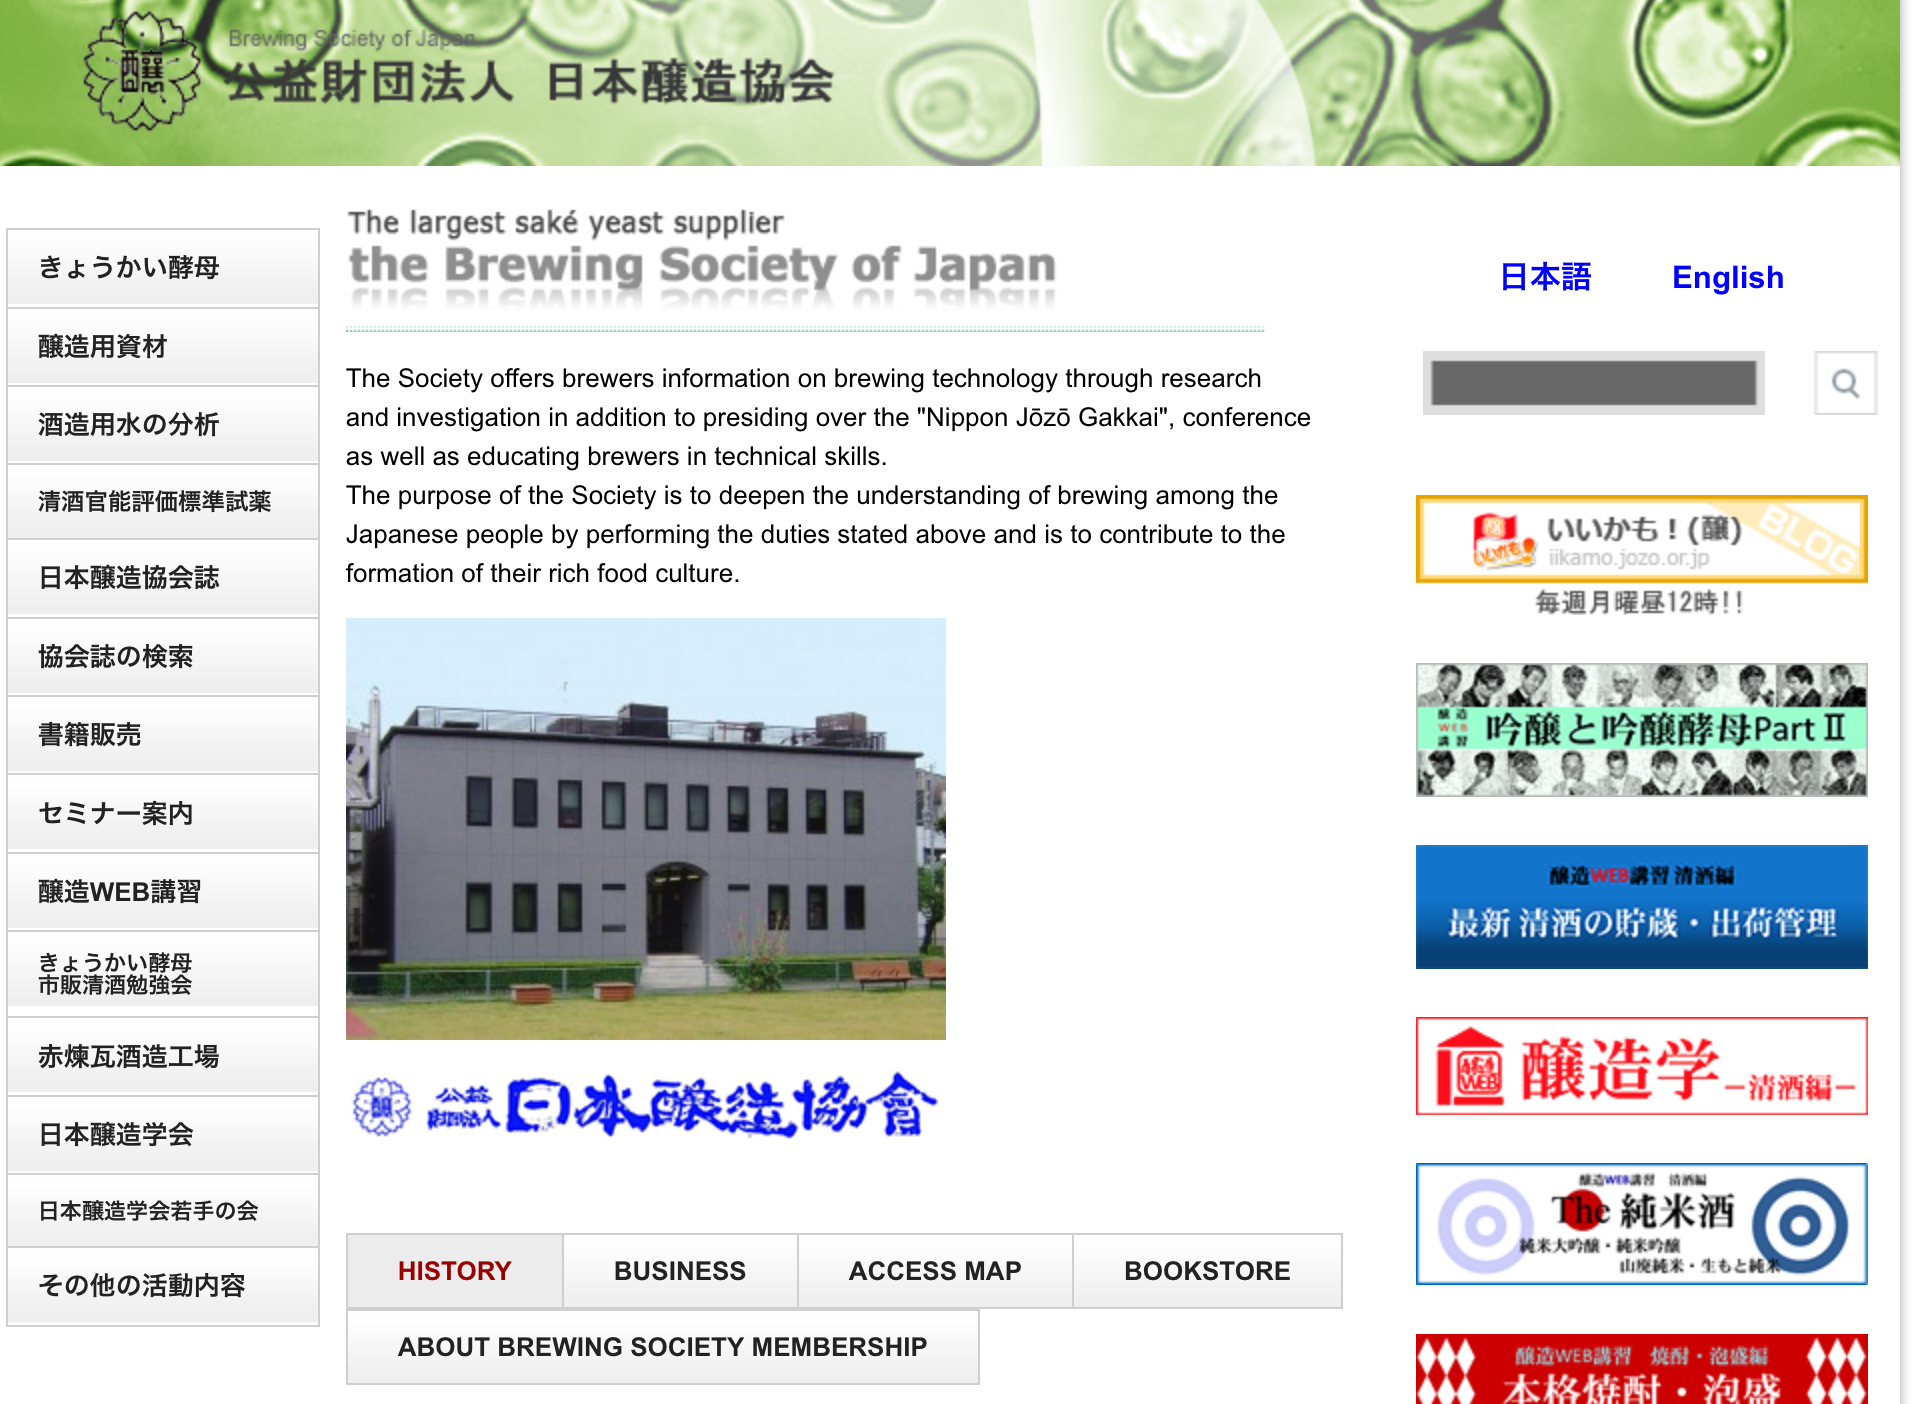 Screenshot_2018-11-24 the Brewing Society of Japan 公益財団法人 日本醸造協会.png